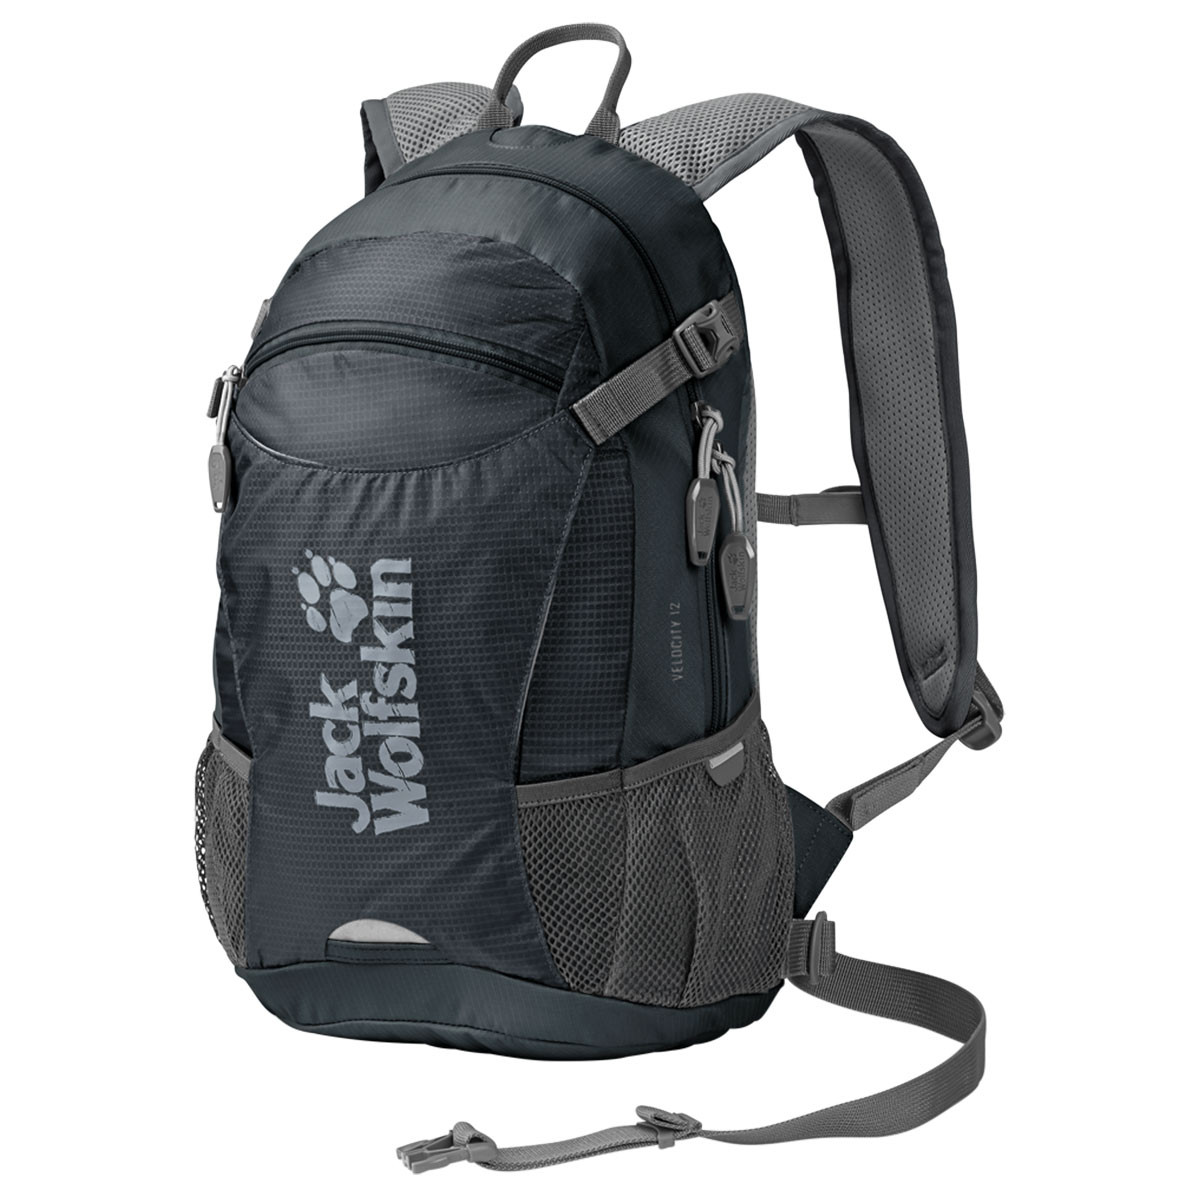 08a458b464 Jack Wolfskin Mens Velocity 12 Outdoor Backpack